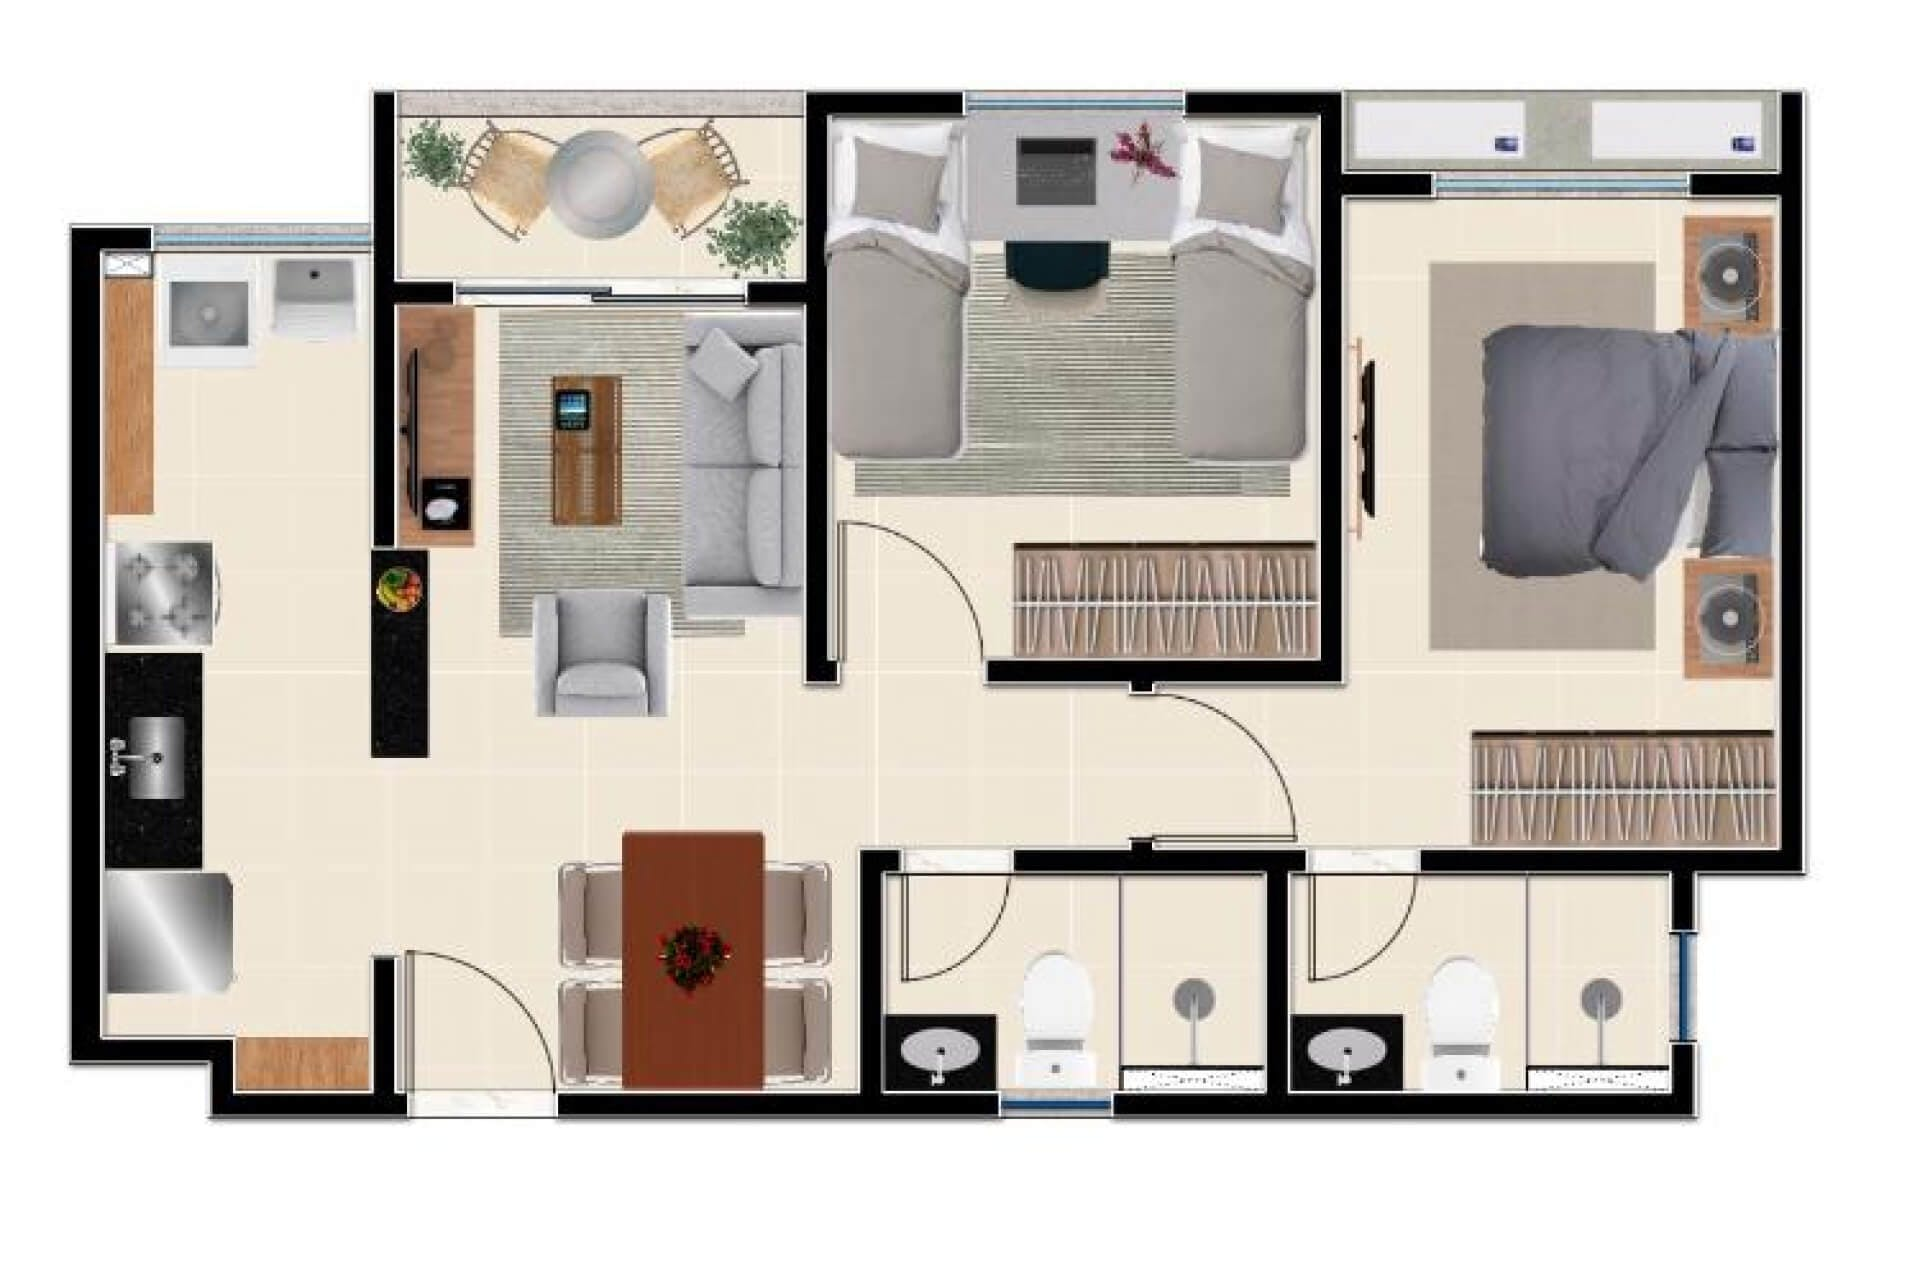 Planta do Carmel Residence. floorplan